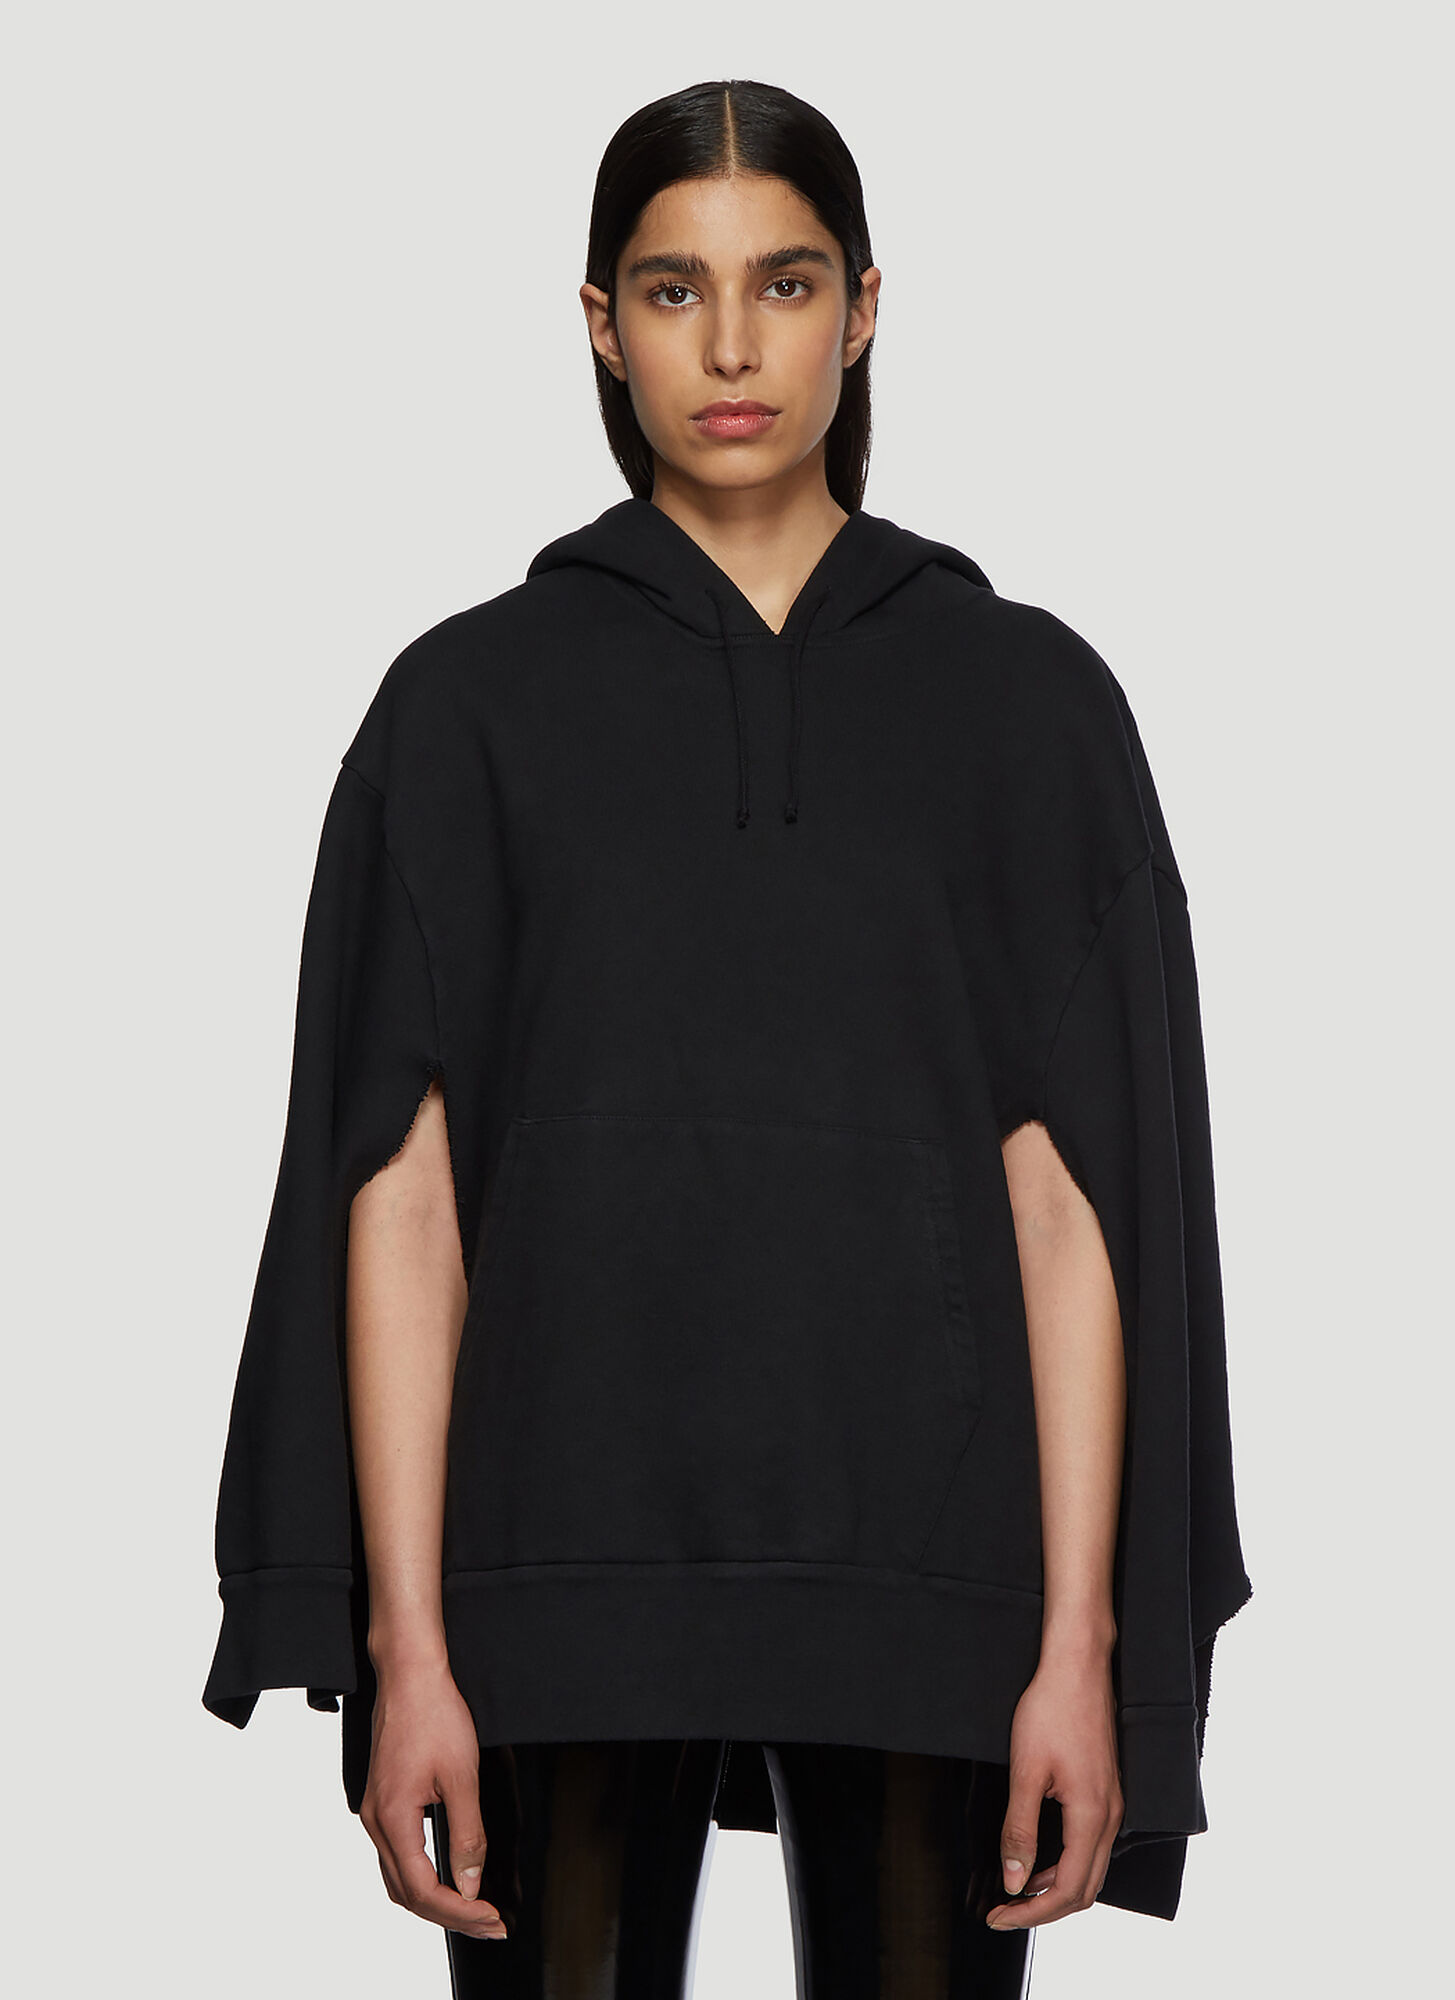 Maison Margiela Hooded Cape Sweatshirt in Black